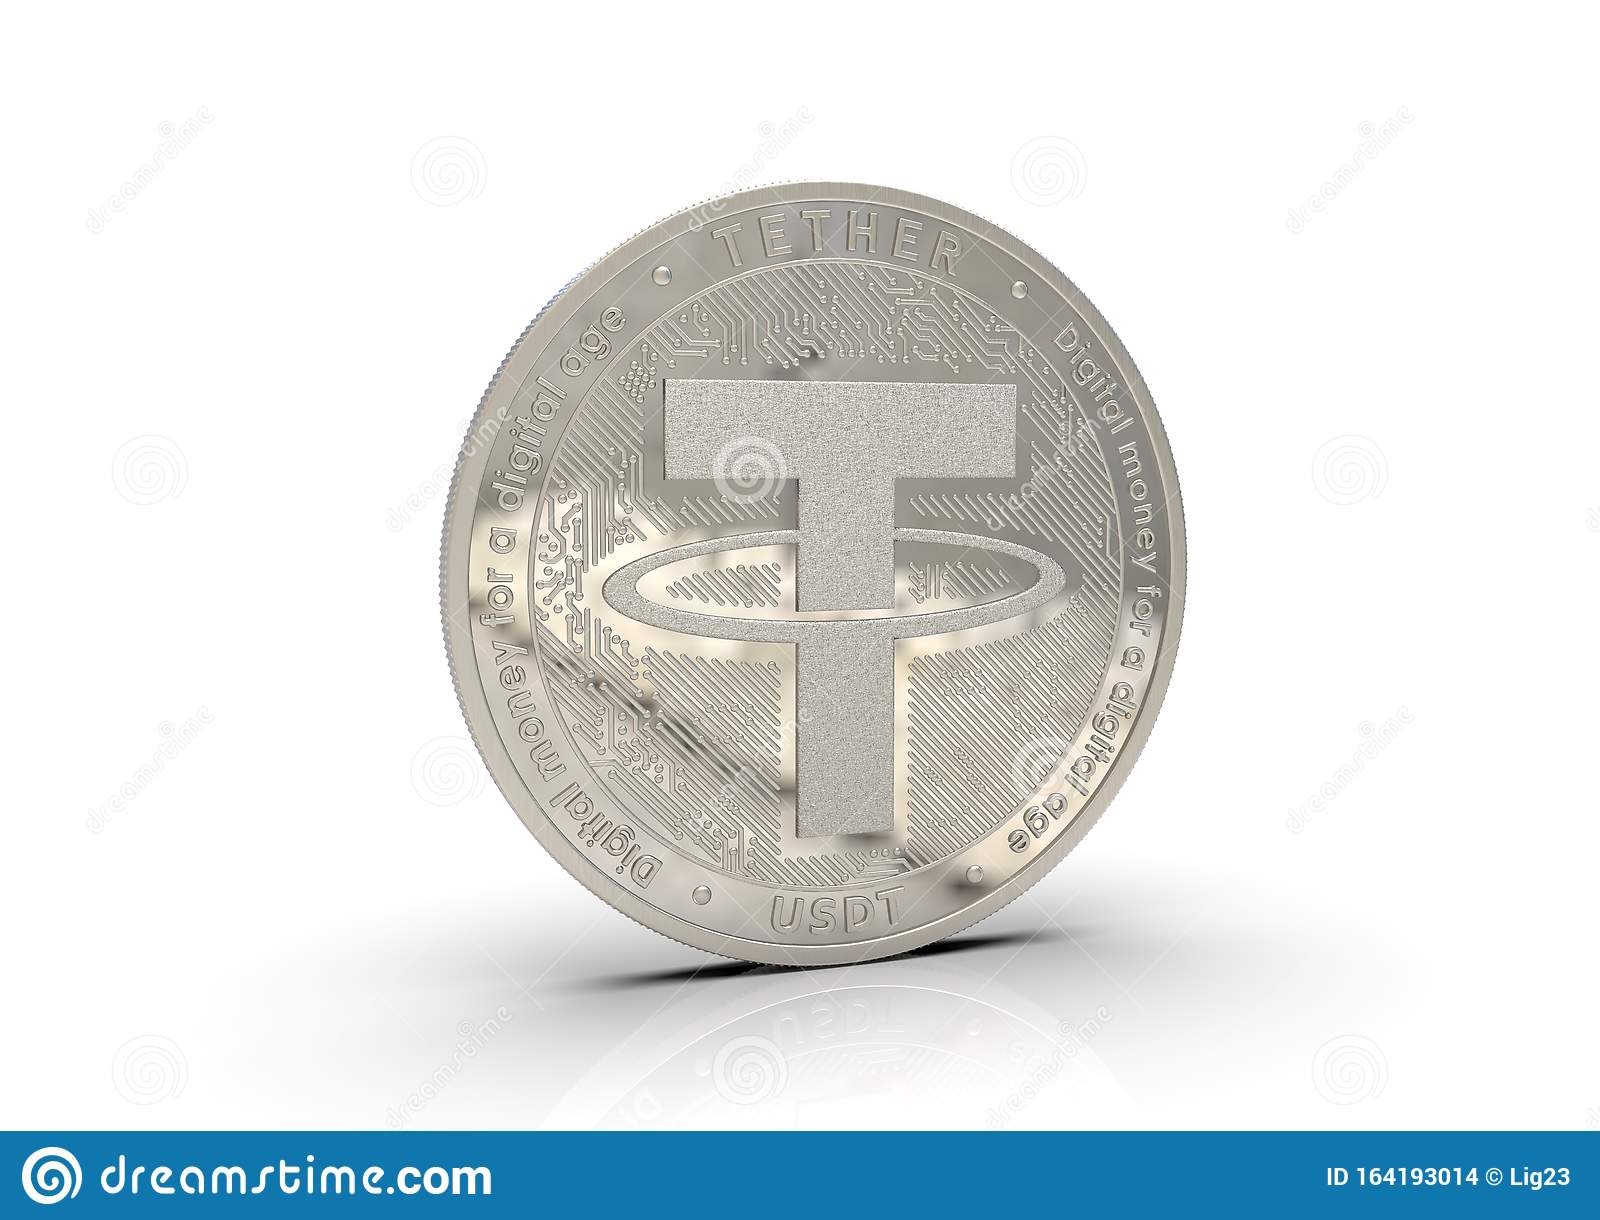 tether cryptocurrency mining